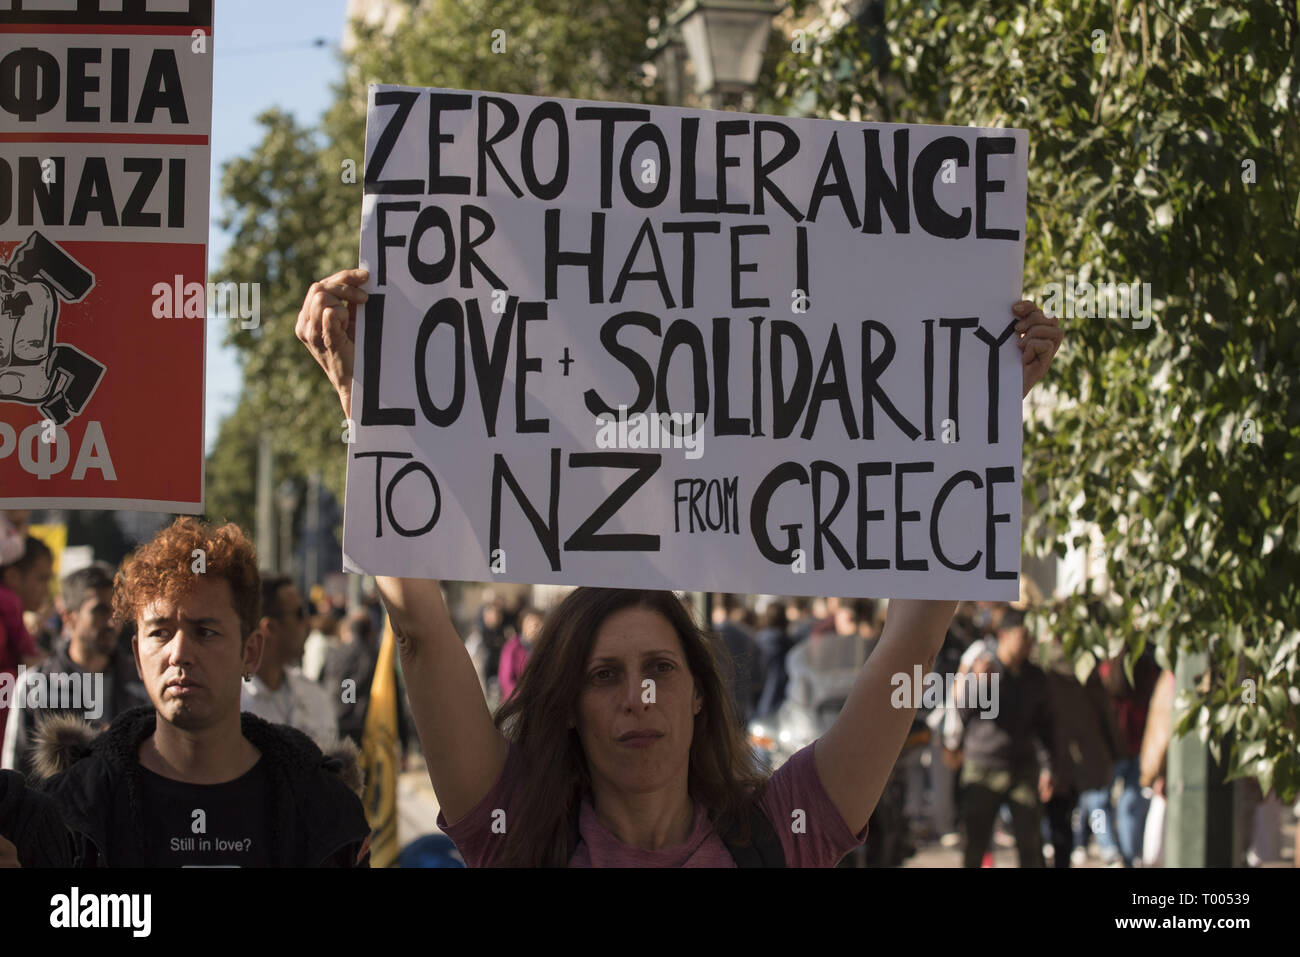 Athens, Greece. 16th Mar, 2019. A protester holds a placard with a message of solidarity to the victims of the racist attack in New Zealand. Leftist and anti-racist organizations staged a rally on the occasion of the International Day against racism to demonstrate against discrimination and racist policies and behaviours. Credit: Nikolas Georgiou/ZUMA Wire/Alamy Live News - Stock Image